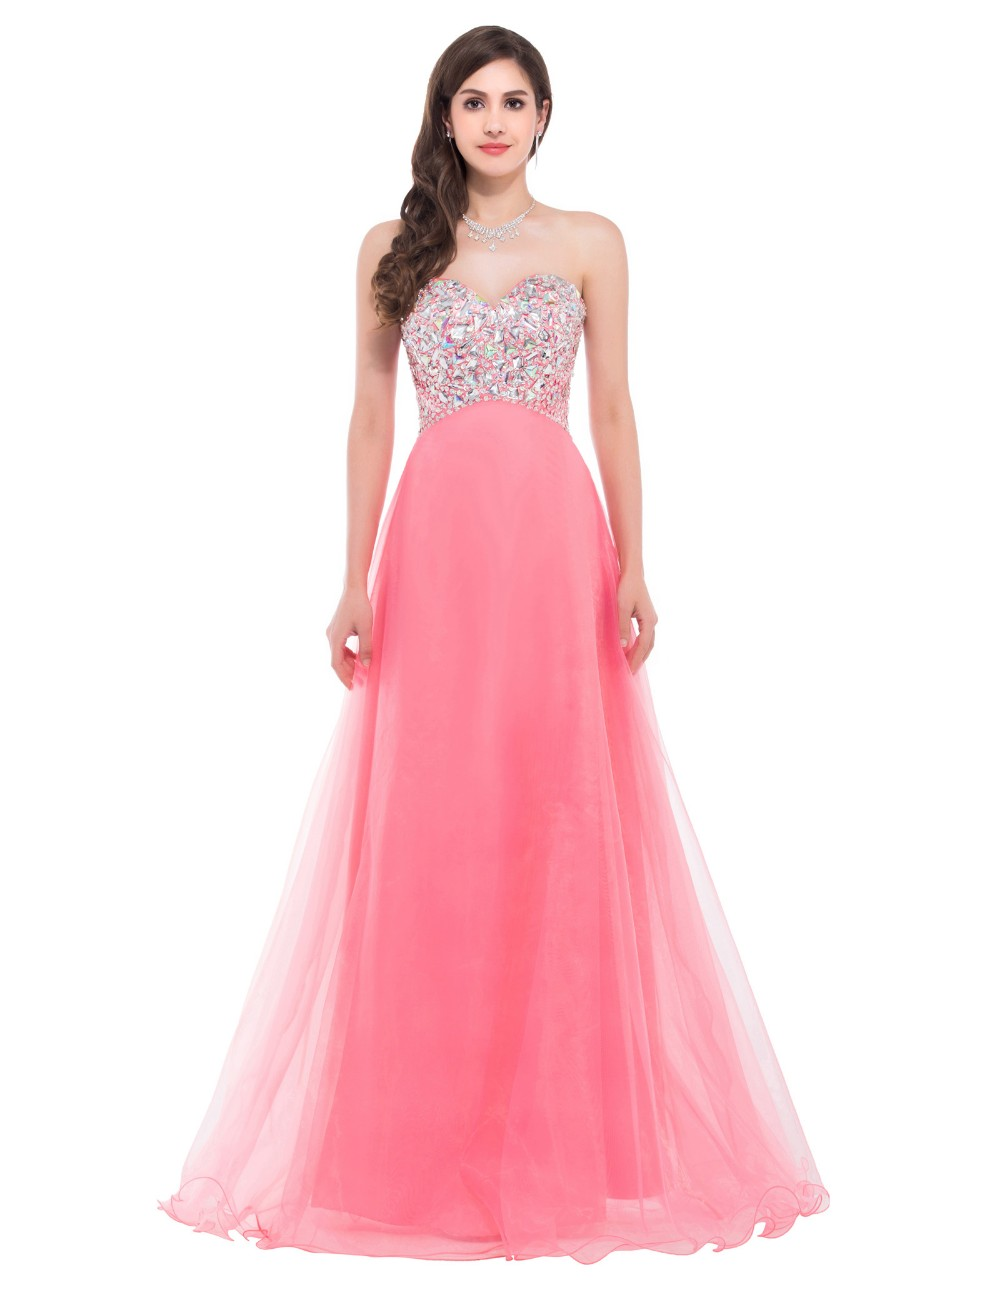 Excelente High School Musical 3 Gabriella Prom Dress Ideas Ornamento ...